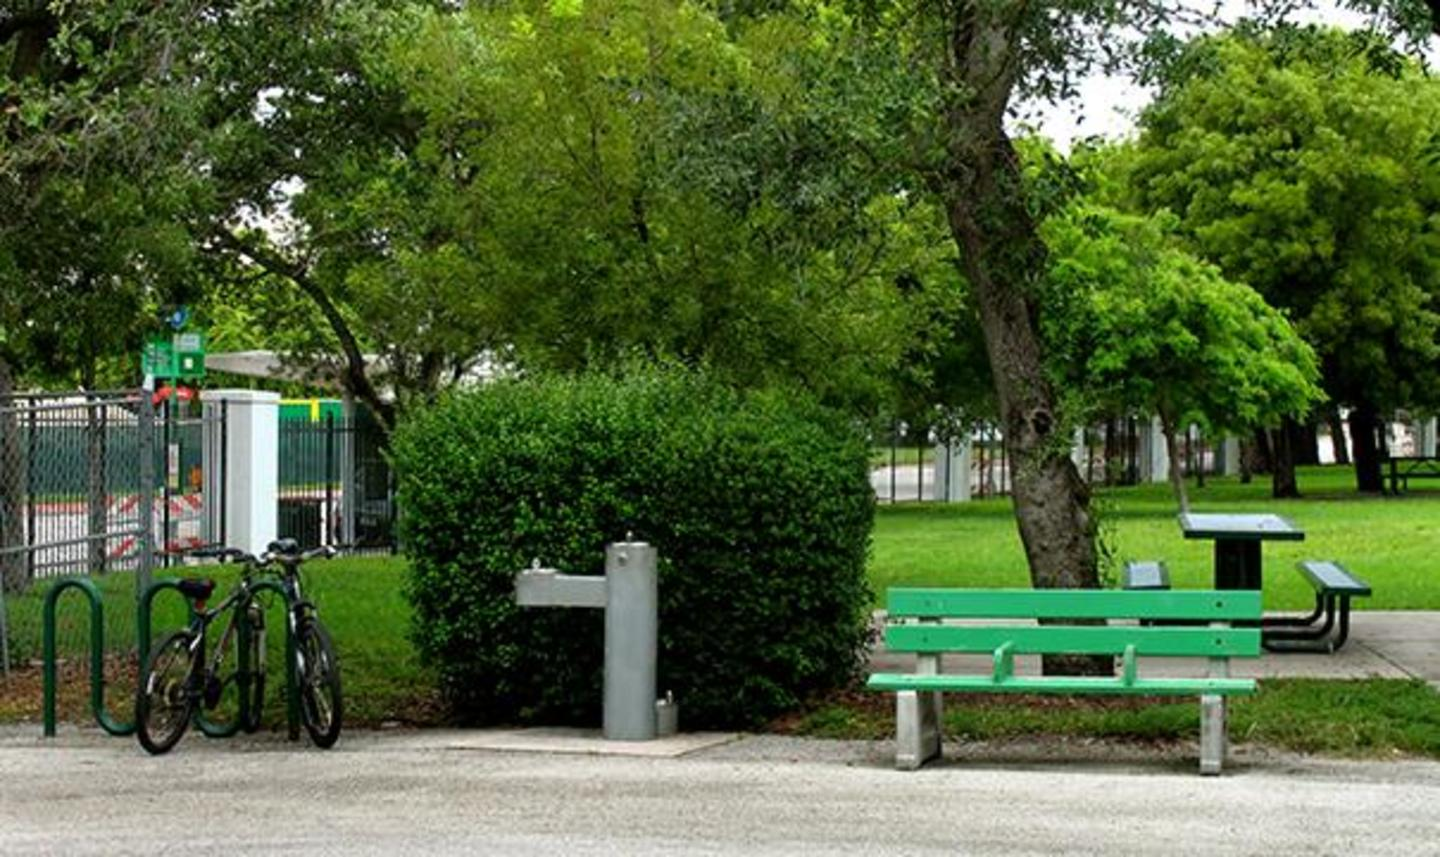 Bicycle rack and bench